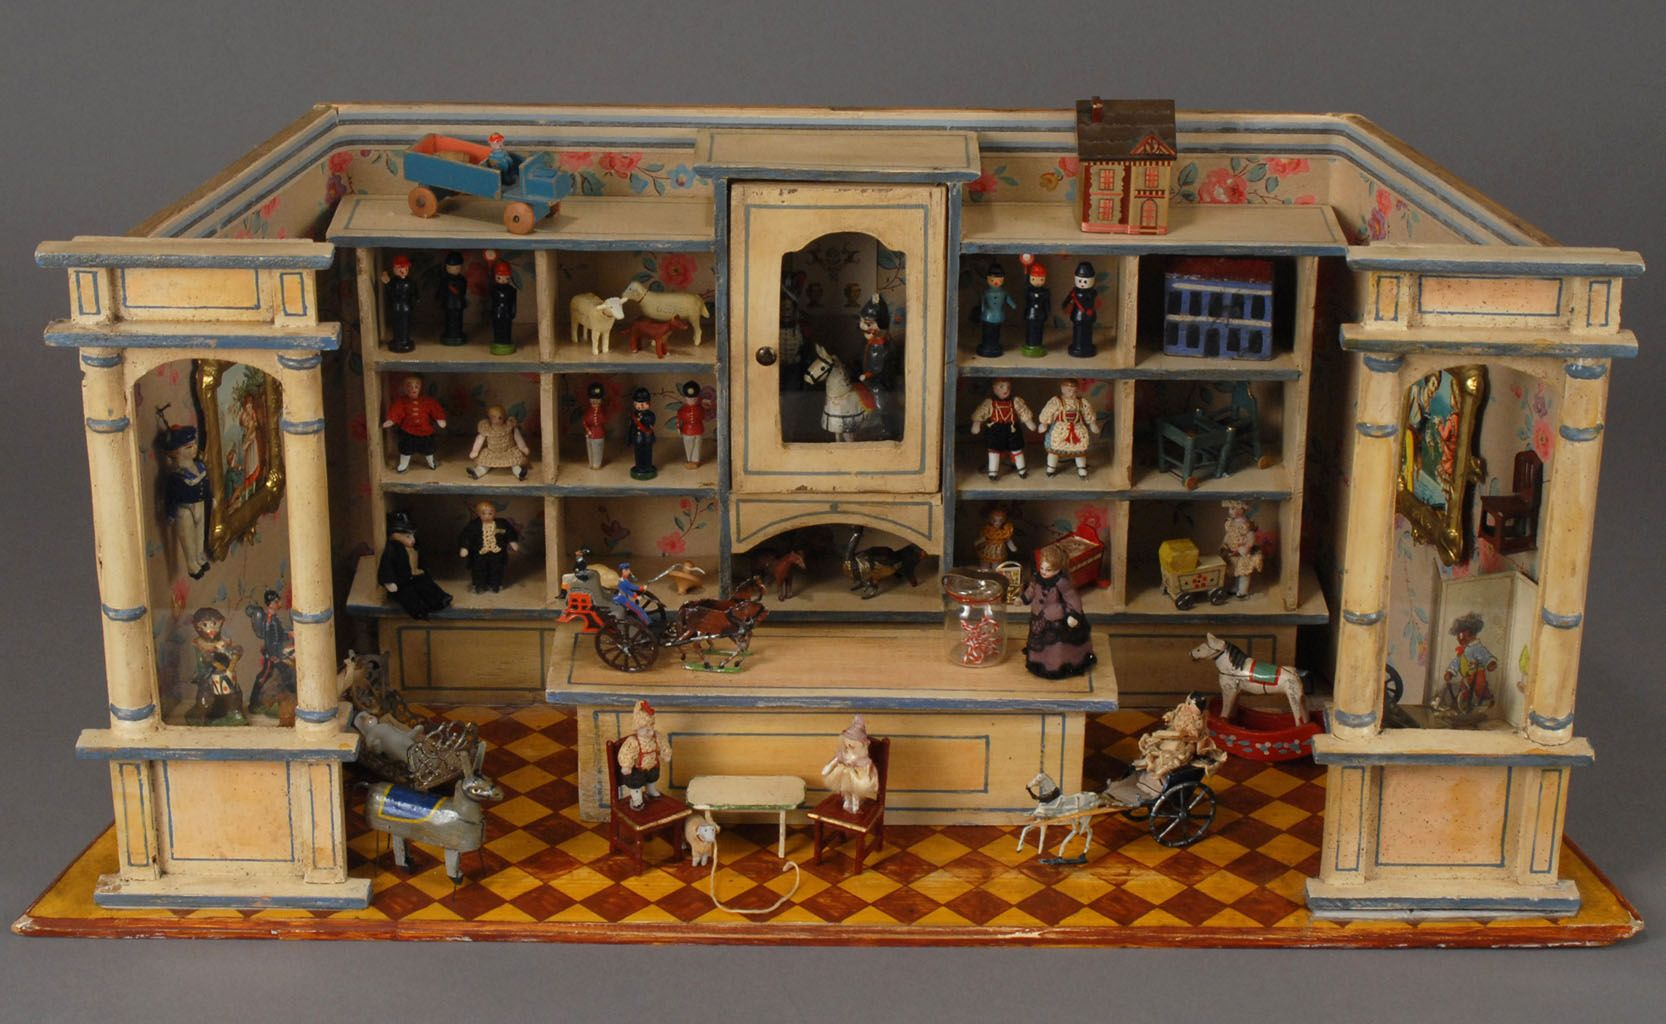 Fabulous Toy Store Roombox From Carmel Doll Shop Dolls House